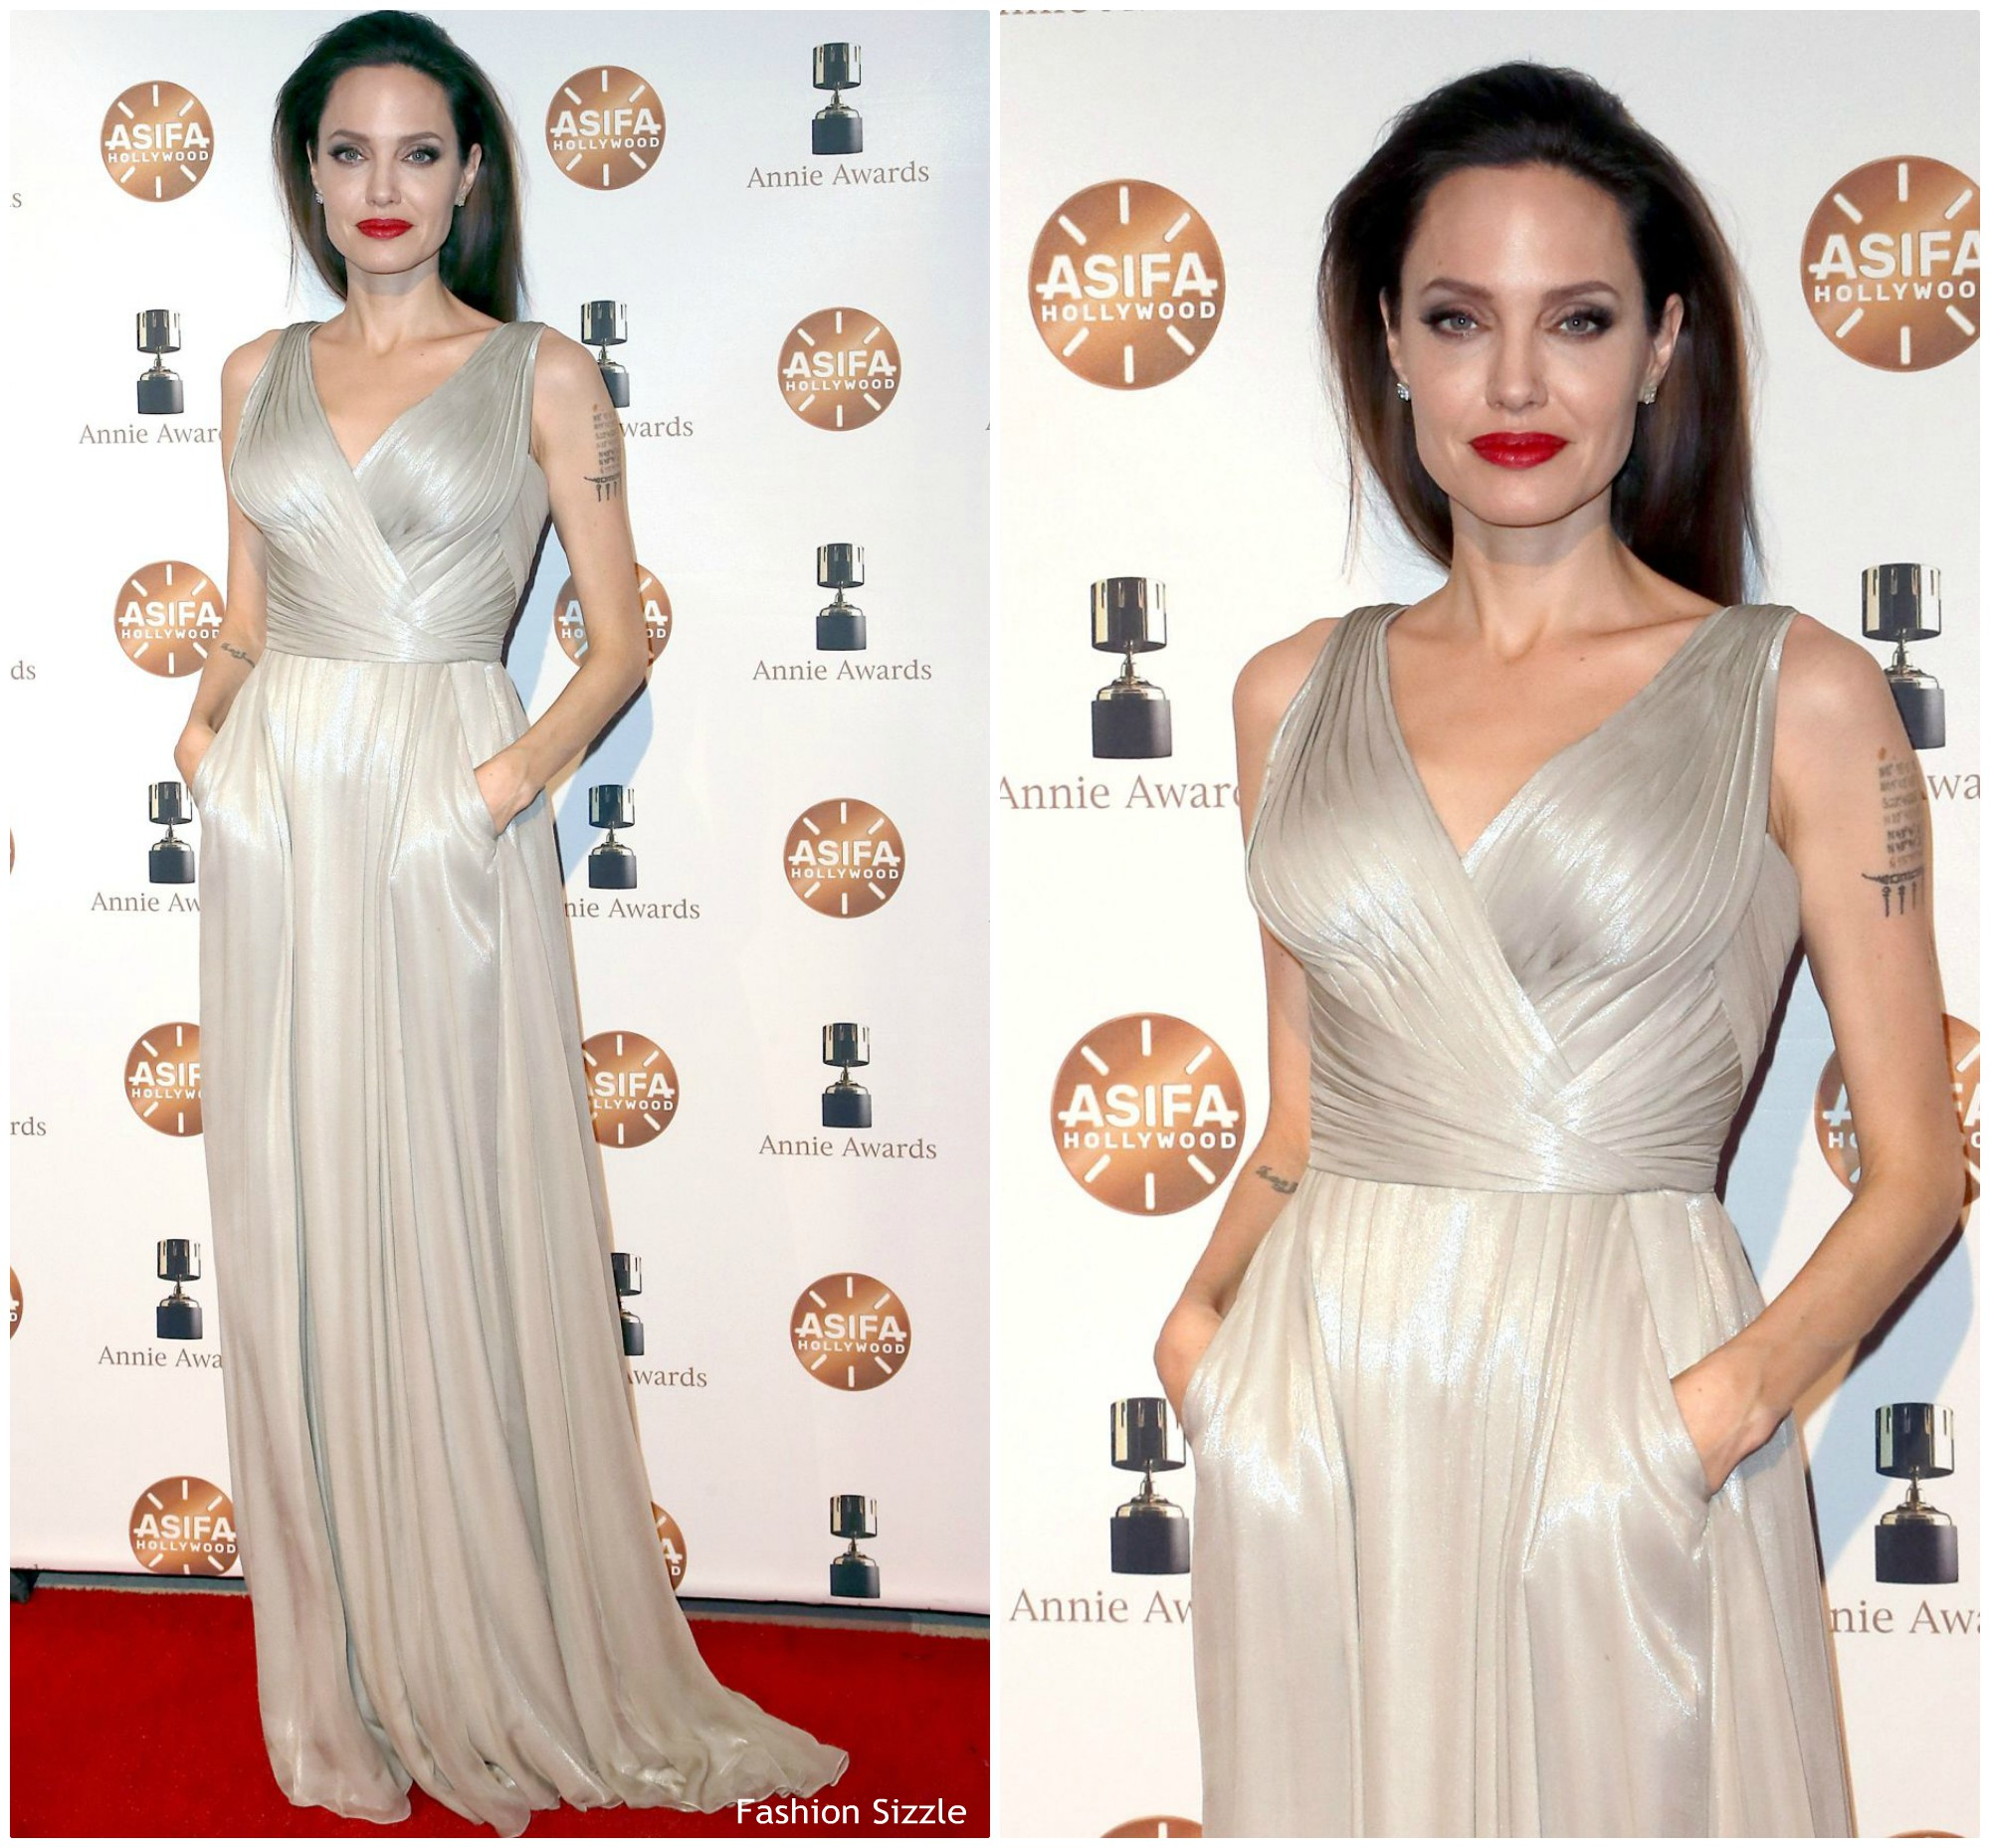 angelina-jolie-in-atelier-versace-2018-annual-annie-awards